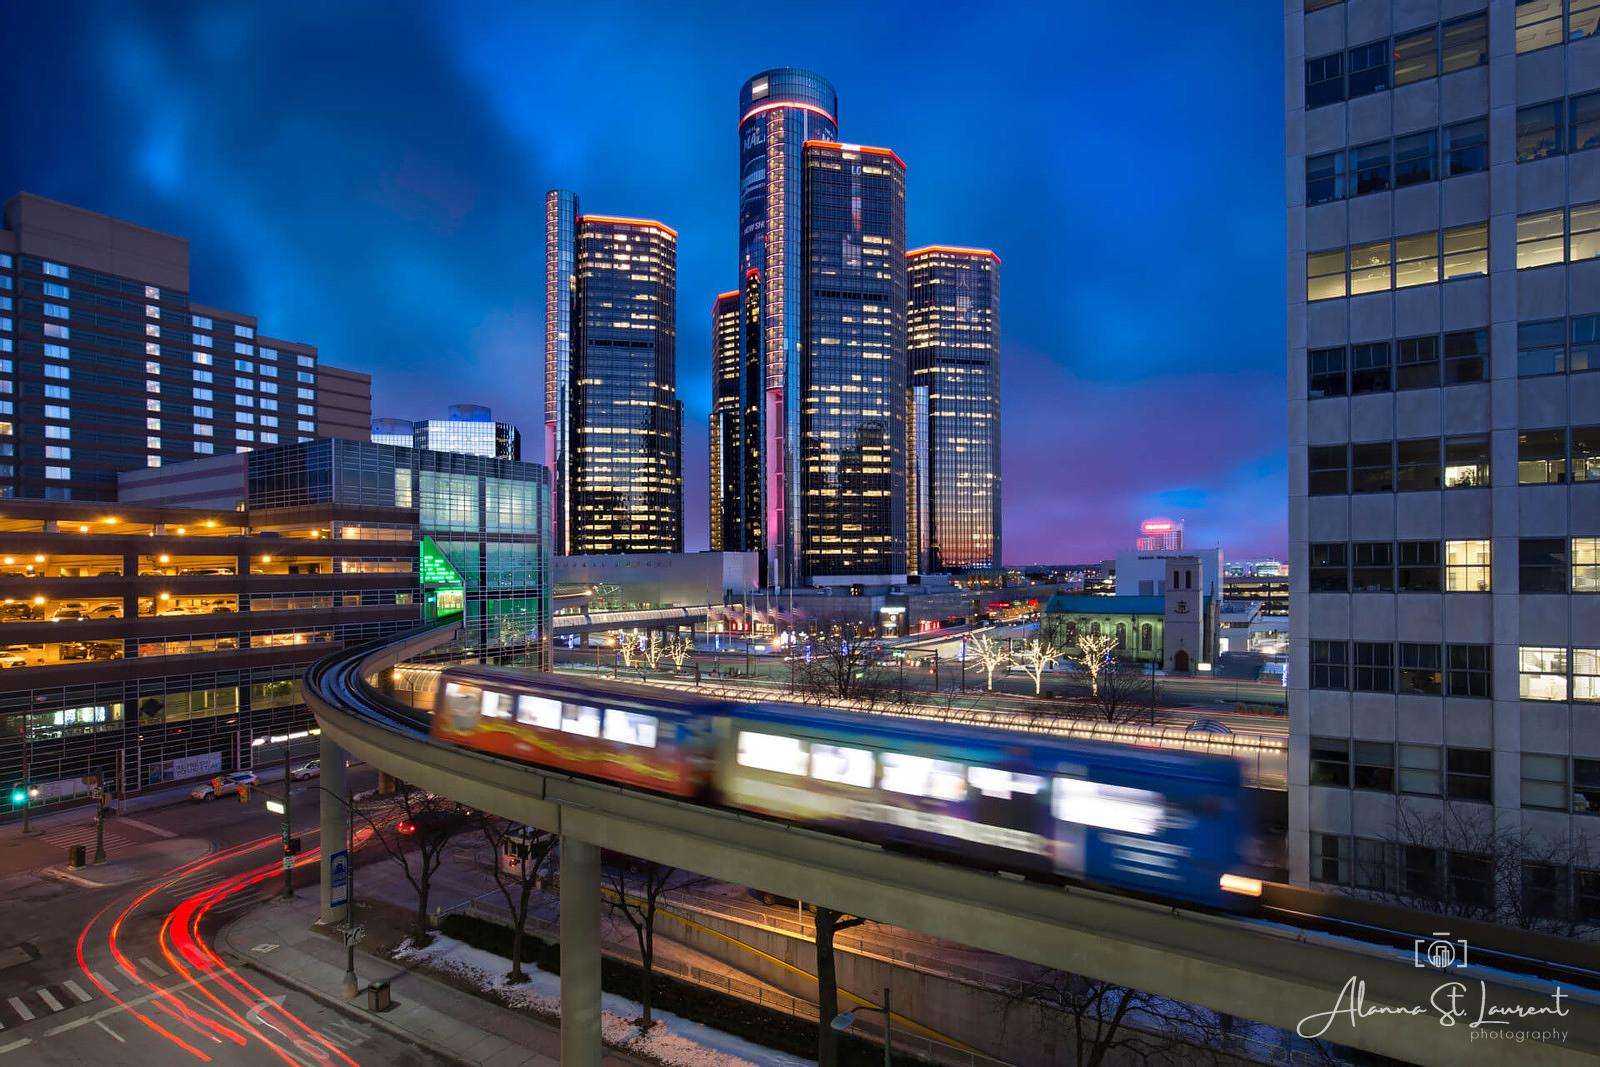 Ren_Cen_People_Mover_at_Night